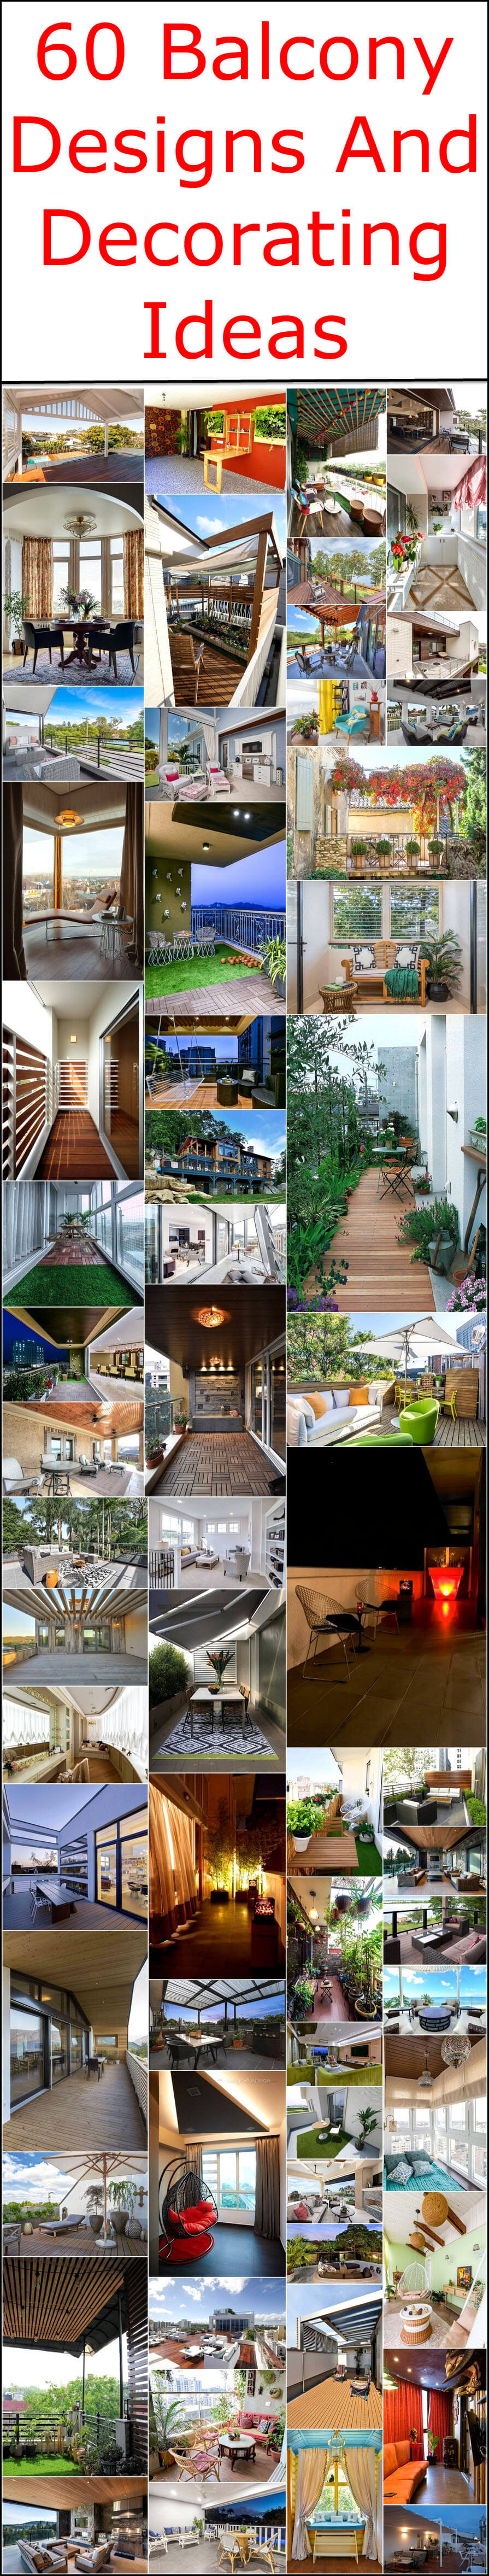 60 Balcony Designs And Decorating Ideas